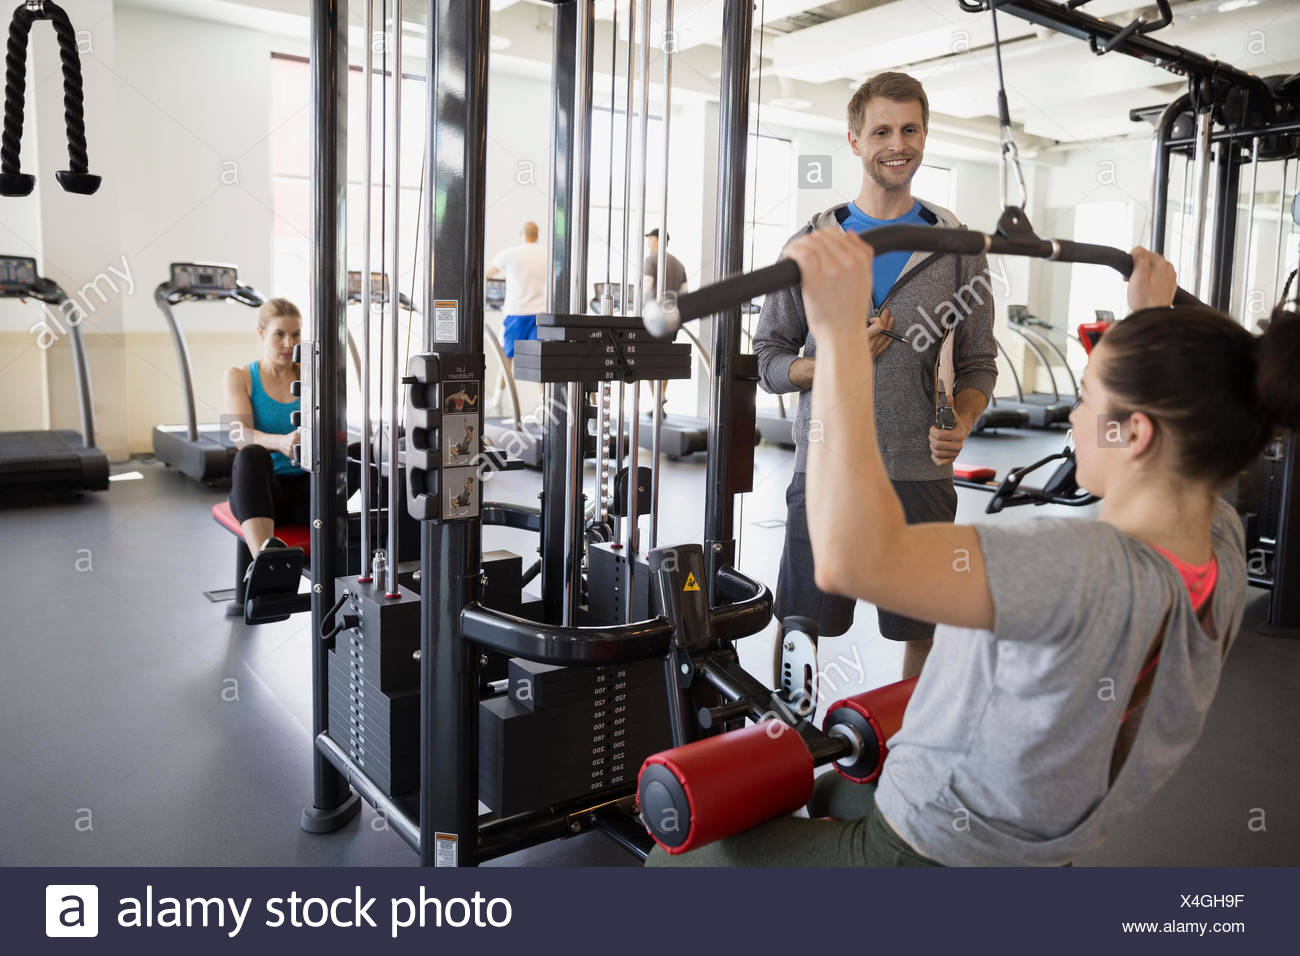 Woman doing lat pulldown exercise at gym - Stock Image